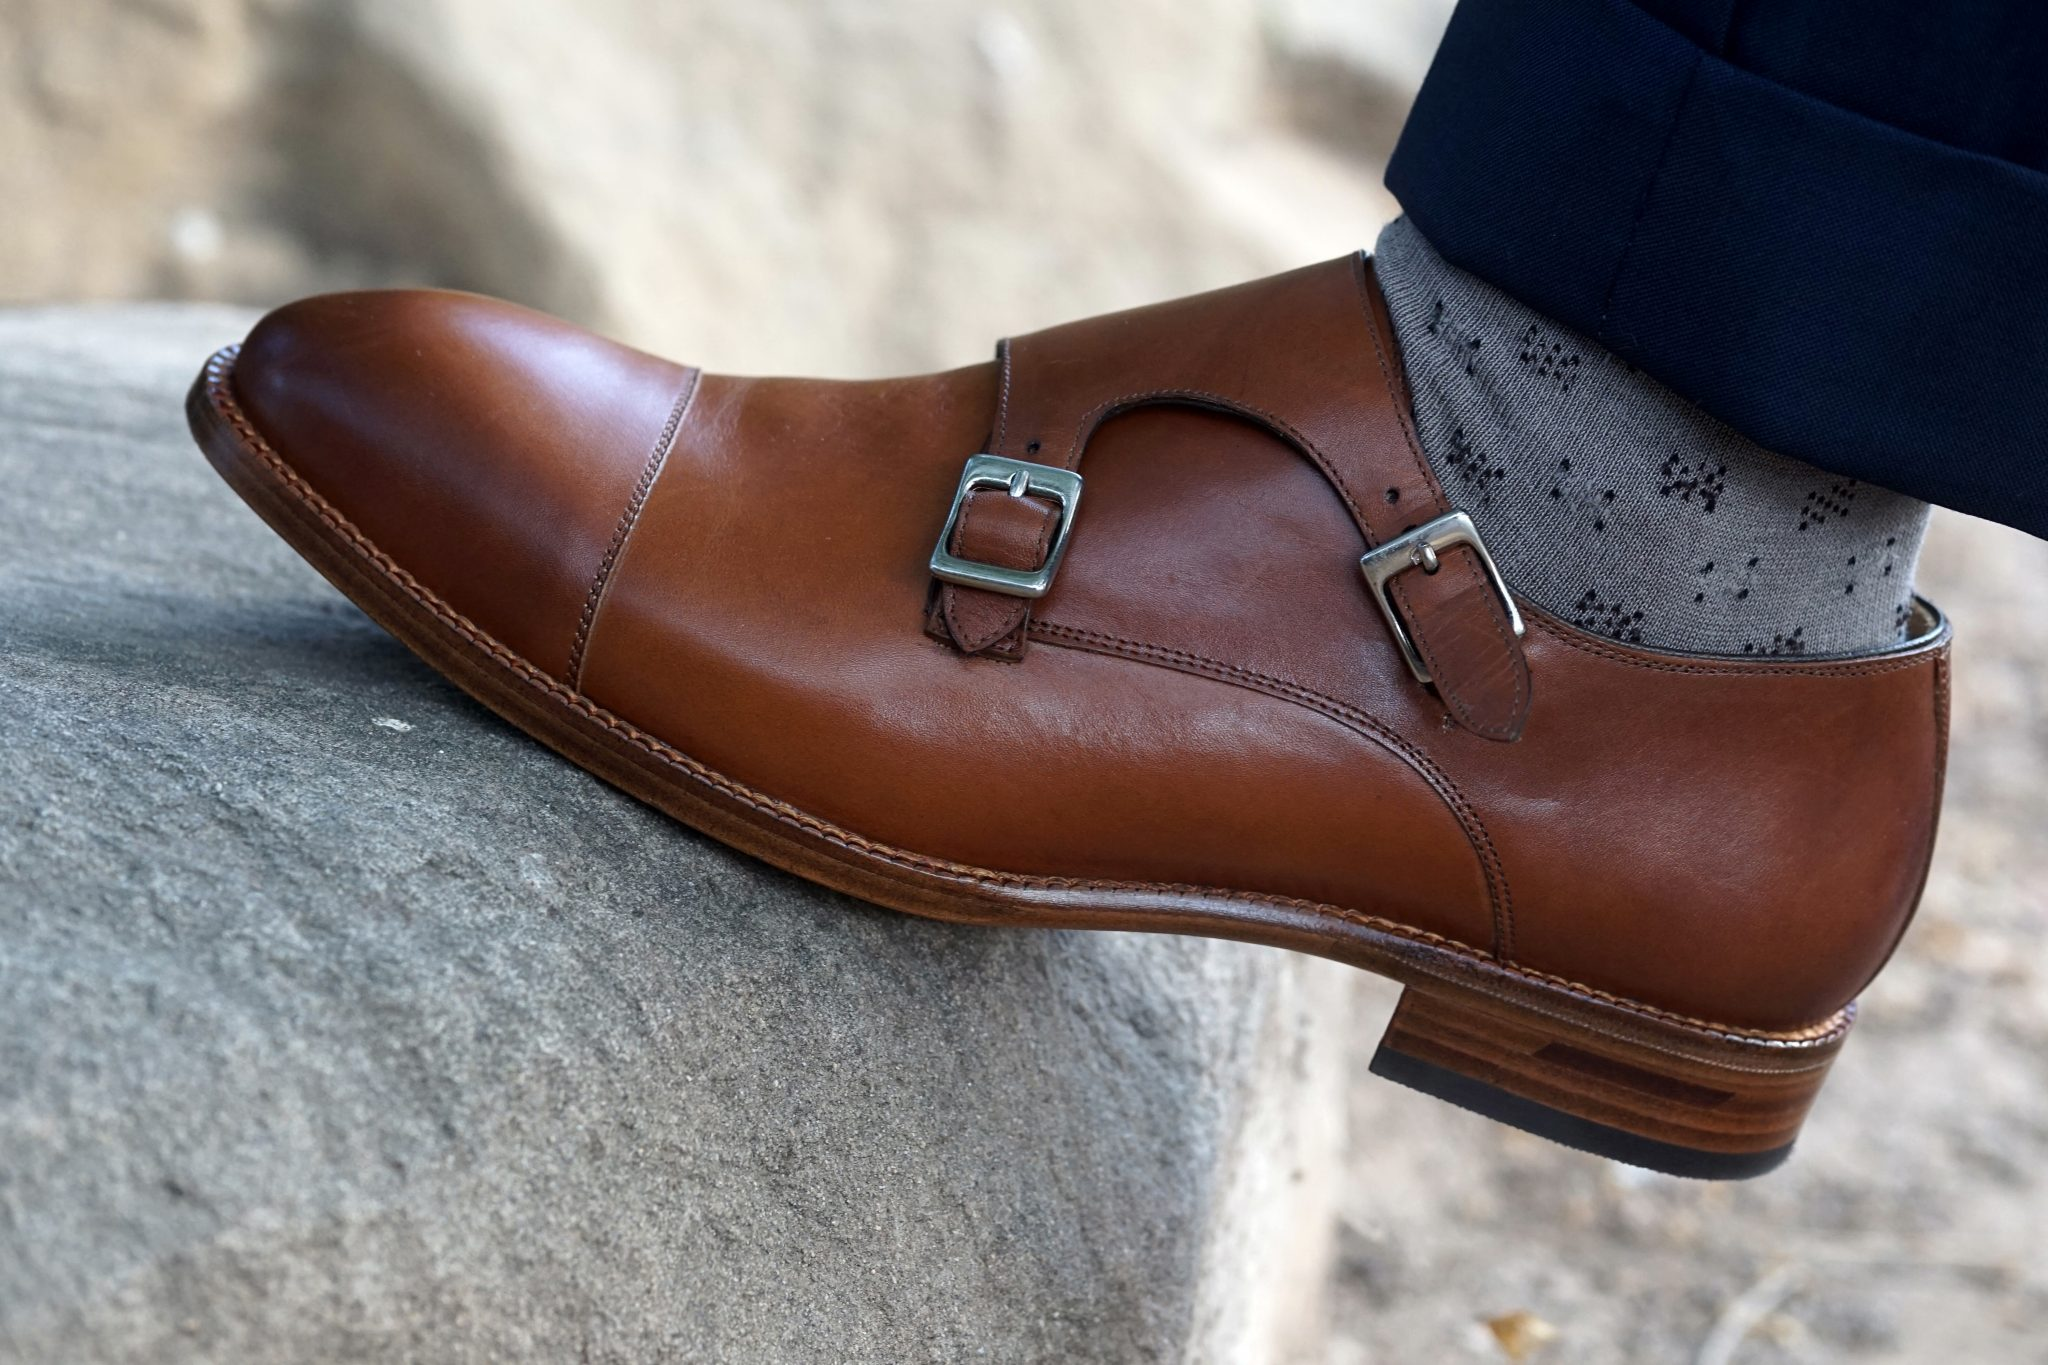 Young Entrepreneur Essentials: Hoyt Monk Strap by Beckett Simonon